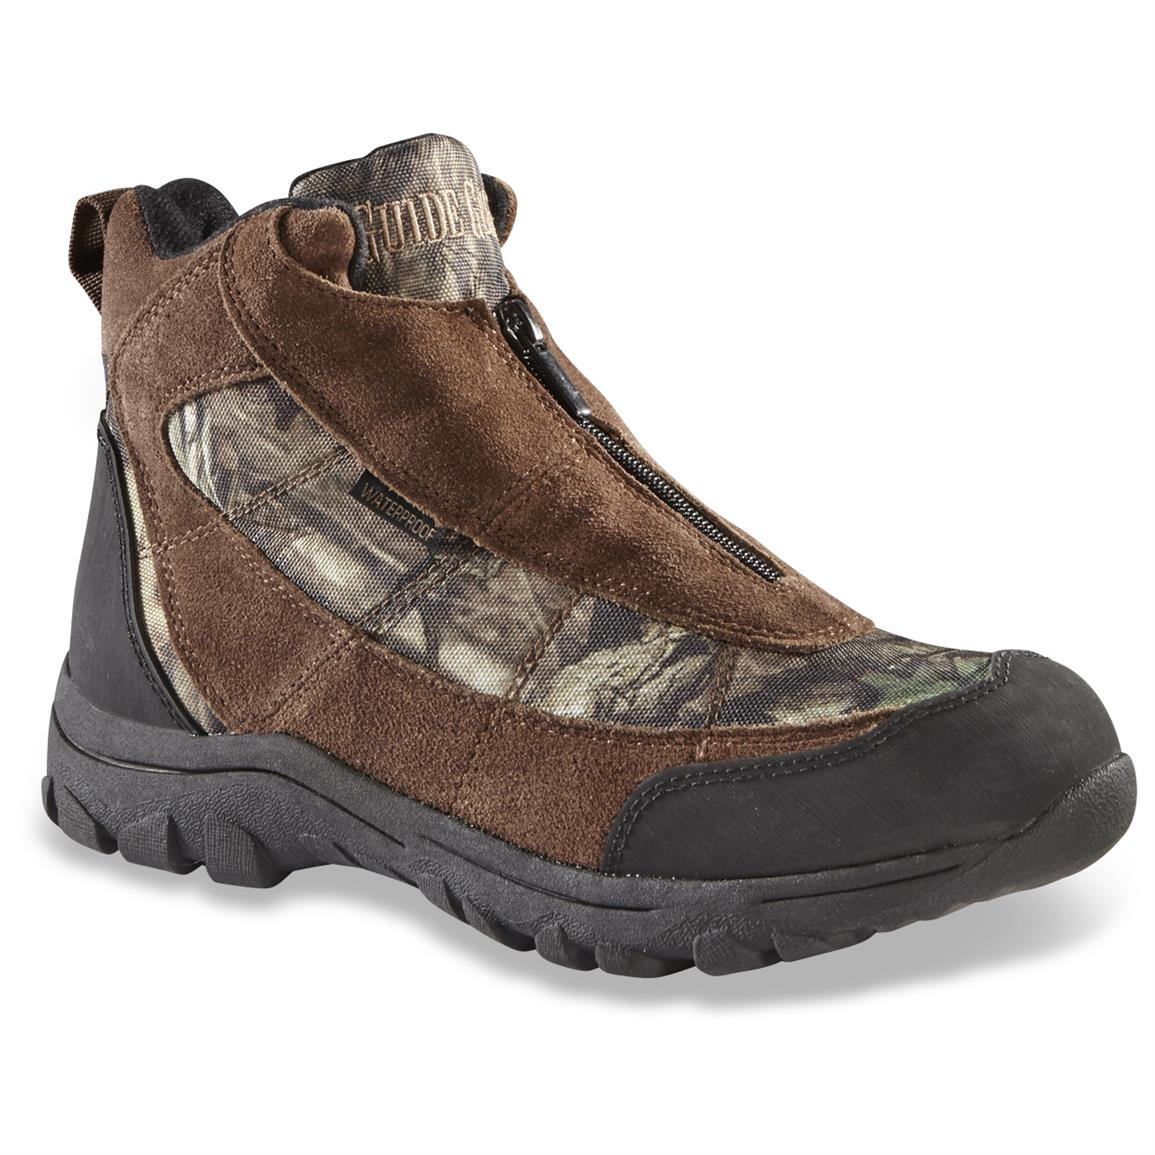 Guide Gear Men's Silvercliff Insulated Boots features